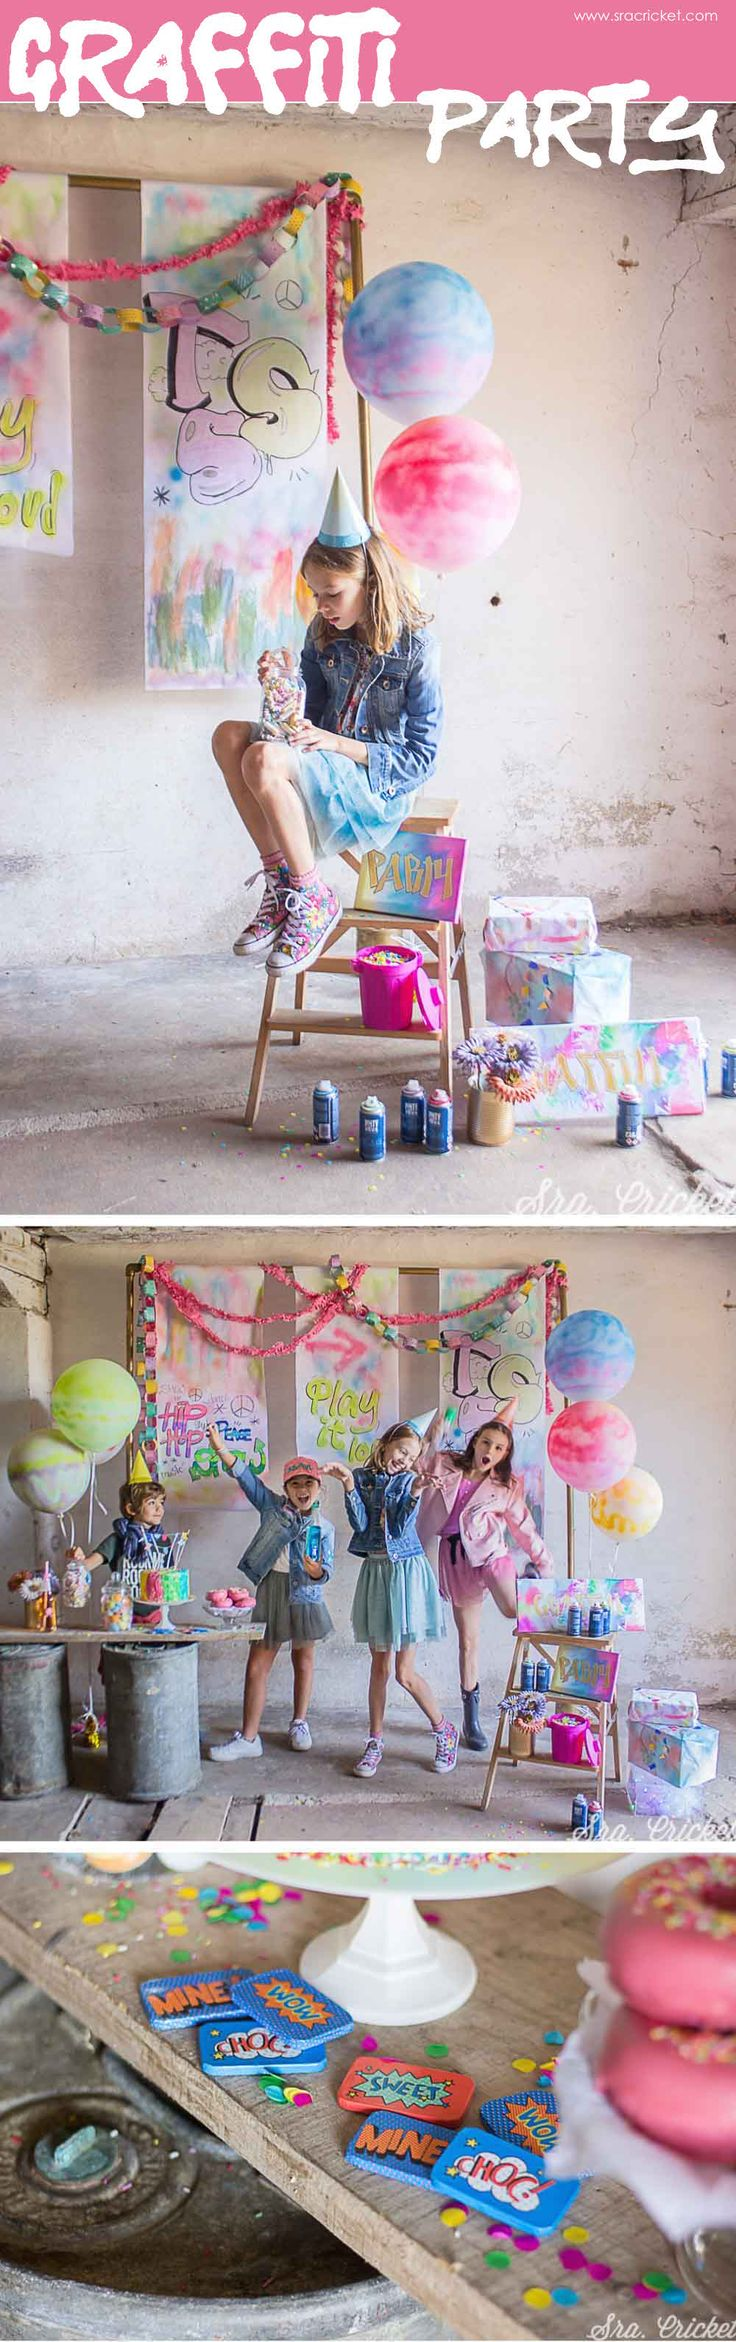 Graffiti Party #party #decoration #kidsparty Fiesta tematica infantil #fiestasinfantiles #fiestatematica #graffiti #party #fiestasparaniños Party Crafts, Diy Crafts, Diy Y Manualidades, Graffiti Painting, Diy Pins, Paint Party, Cricket, Celebrations, Party Ideas